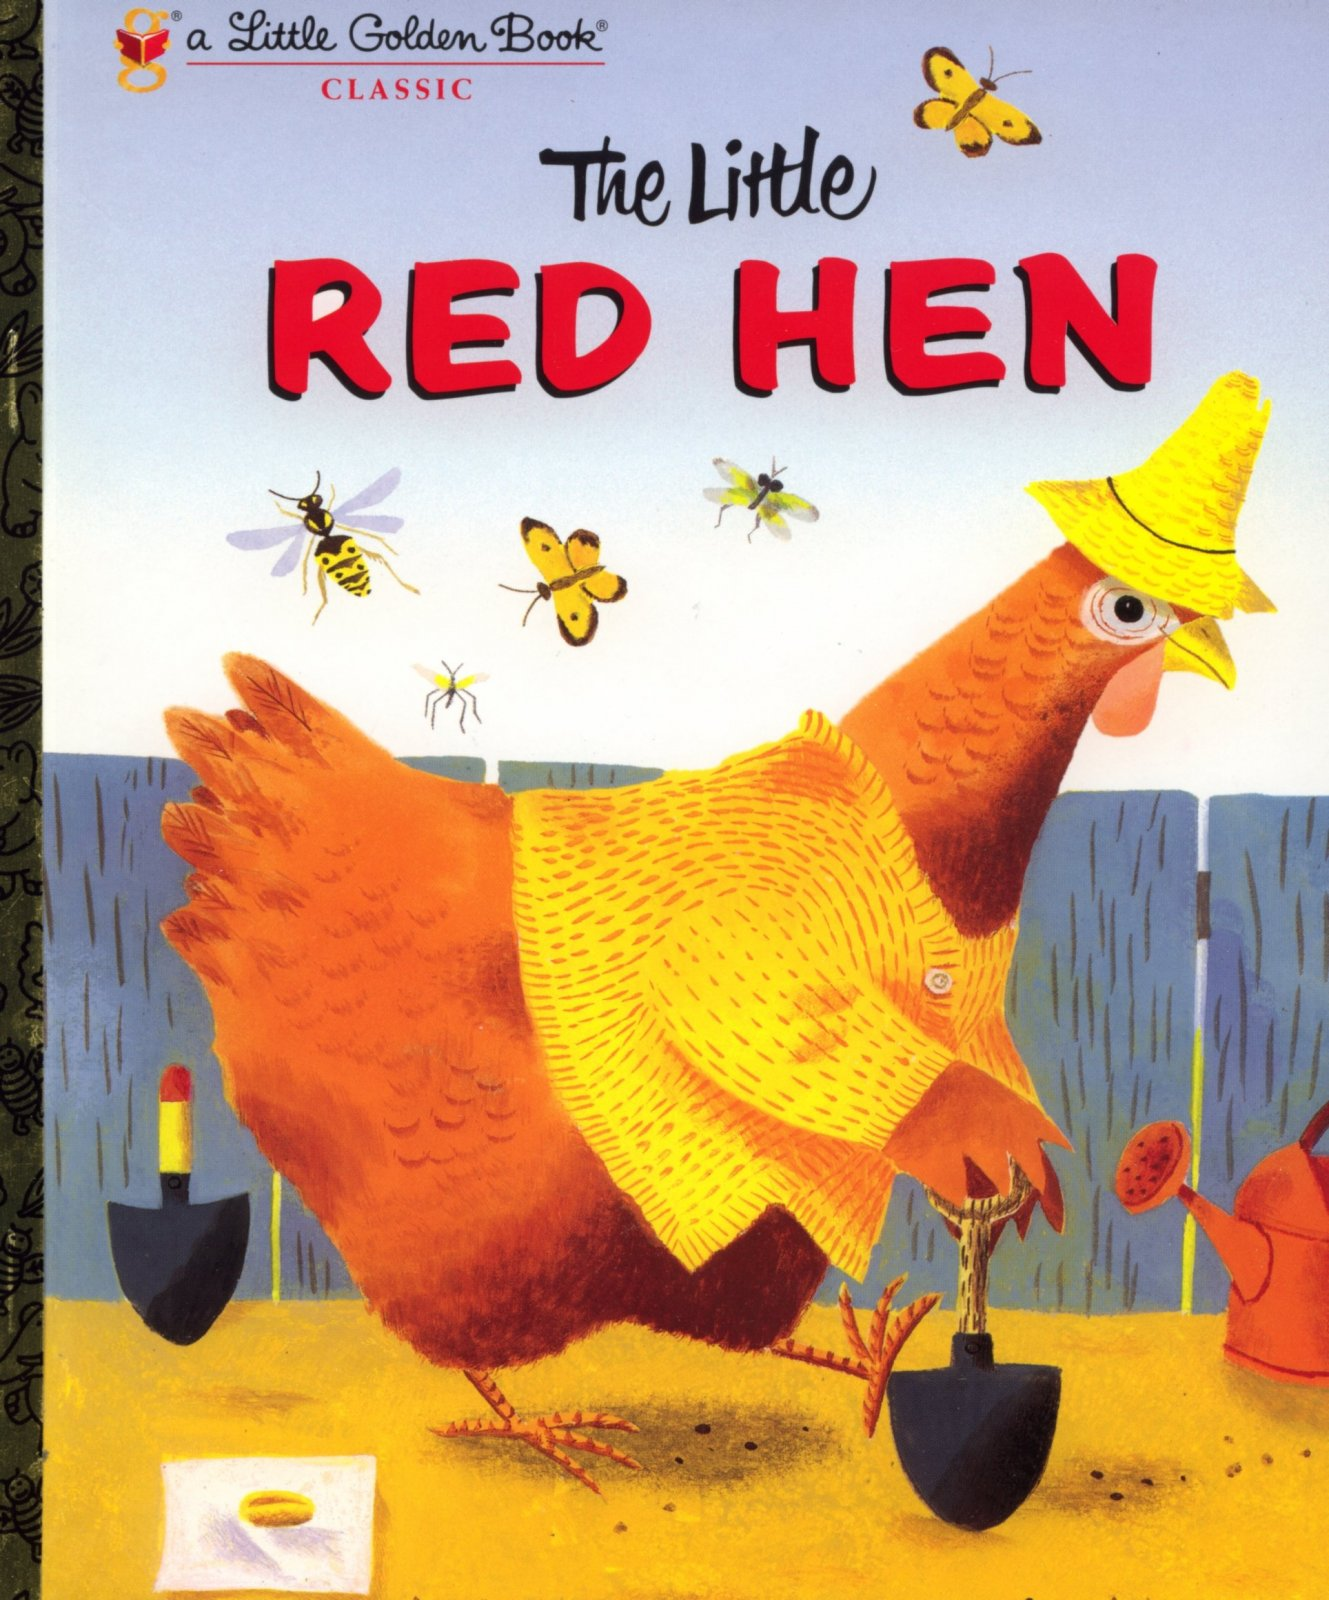 The Little Red Hen Golden Book